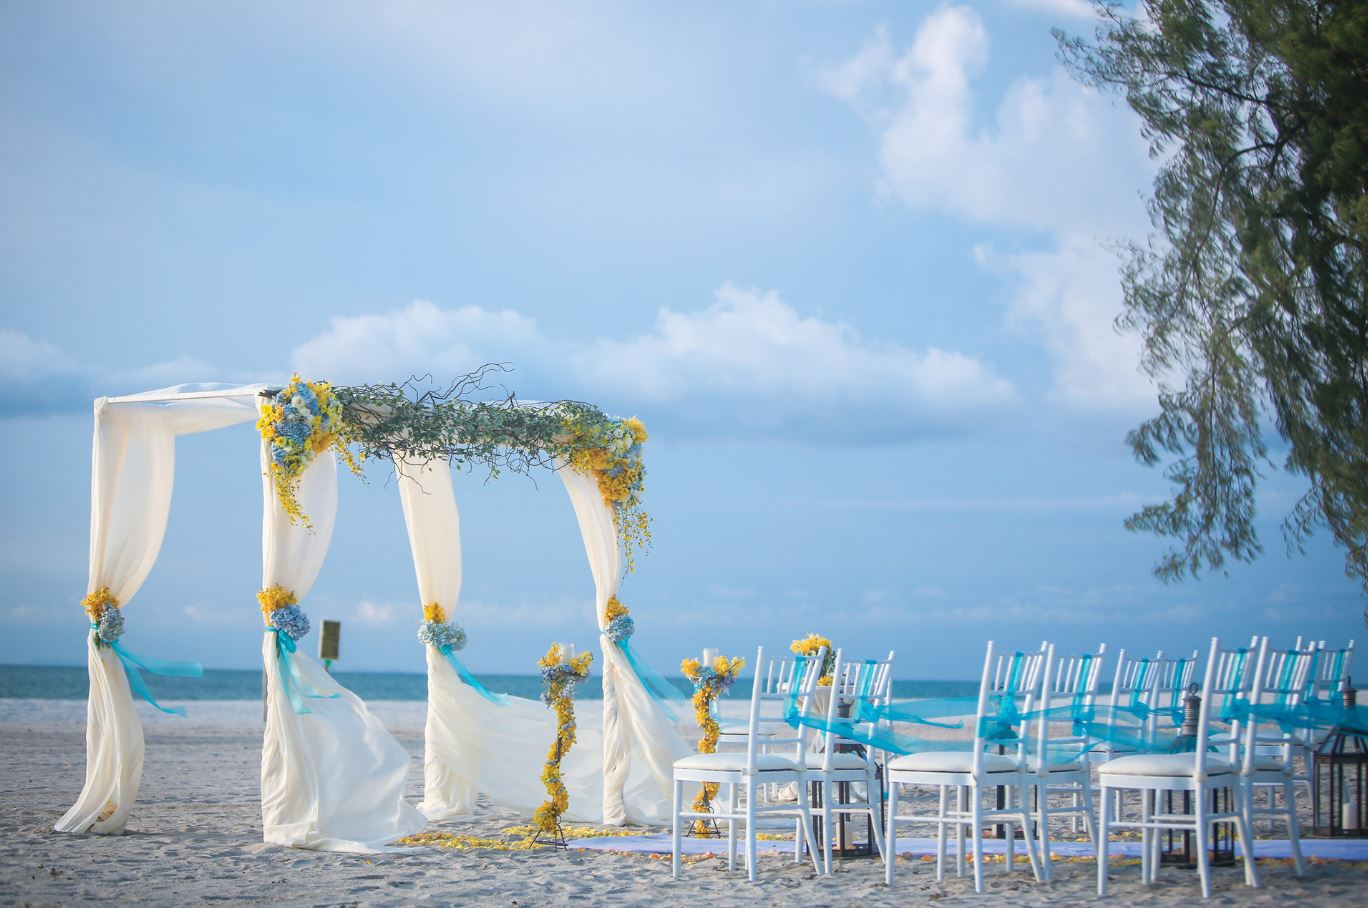 Top 5 luxurious resorts for destination wedding in malaysia for Top 5 wedding destinations